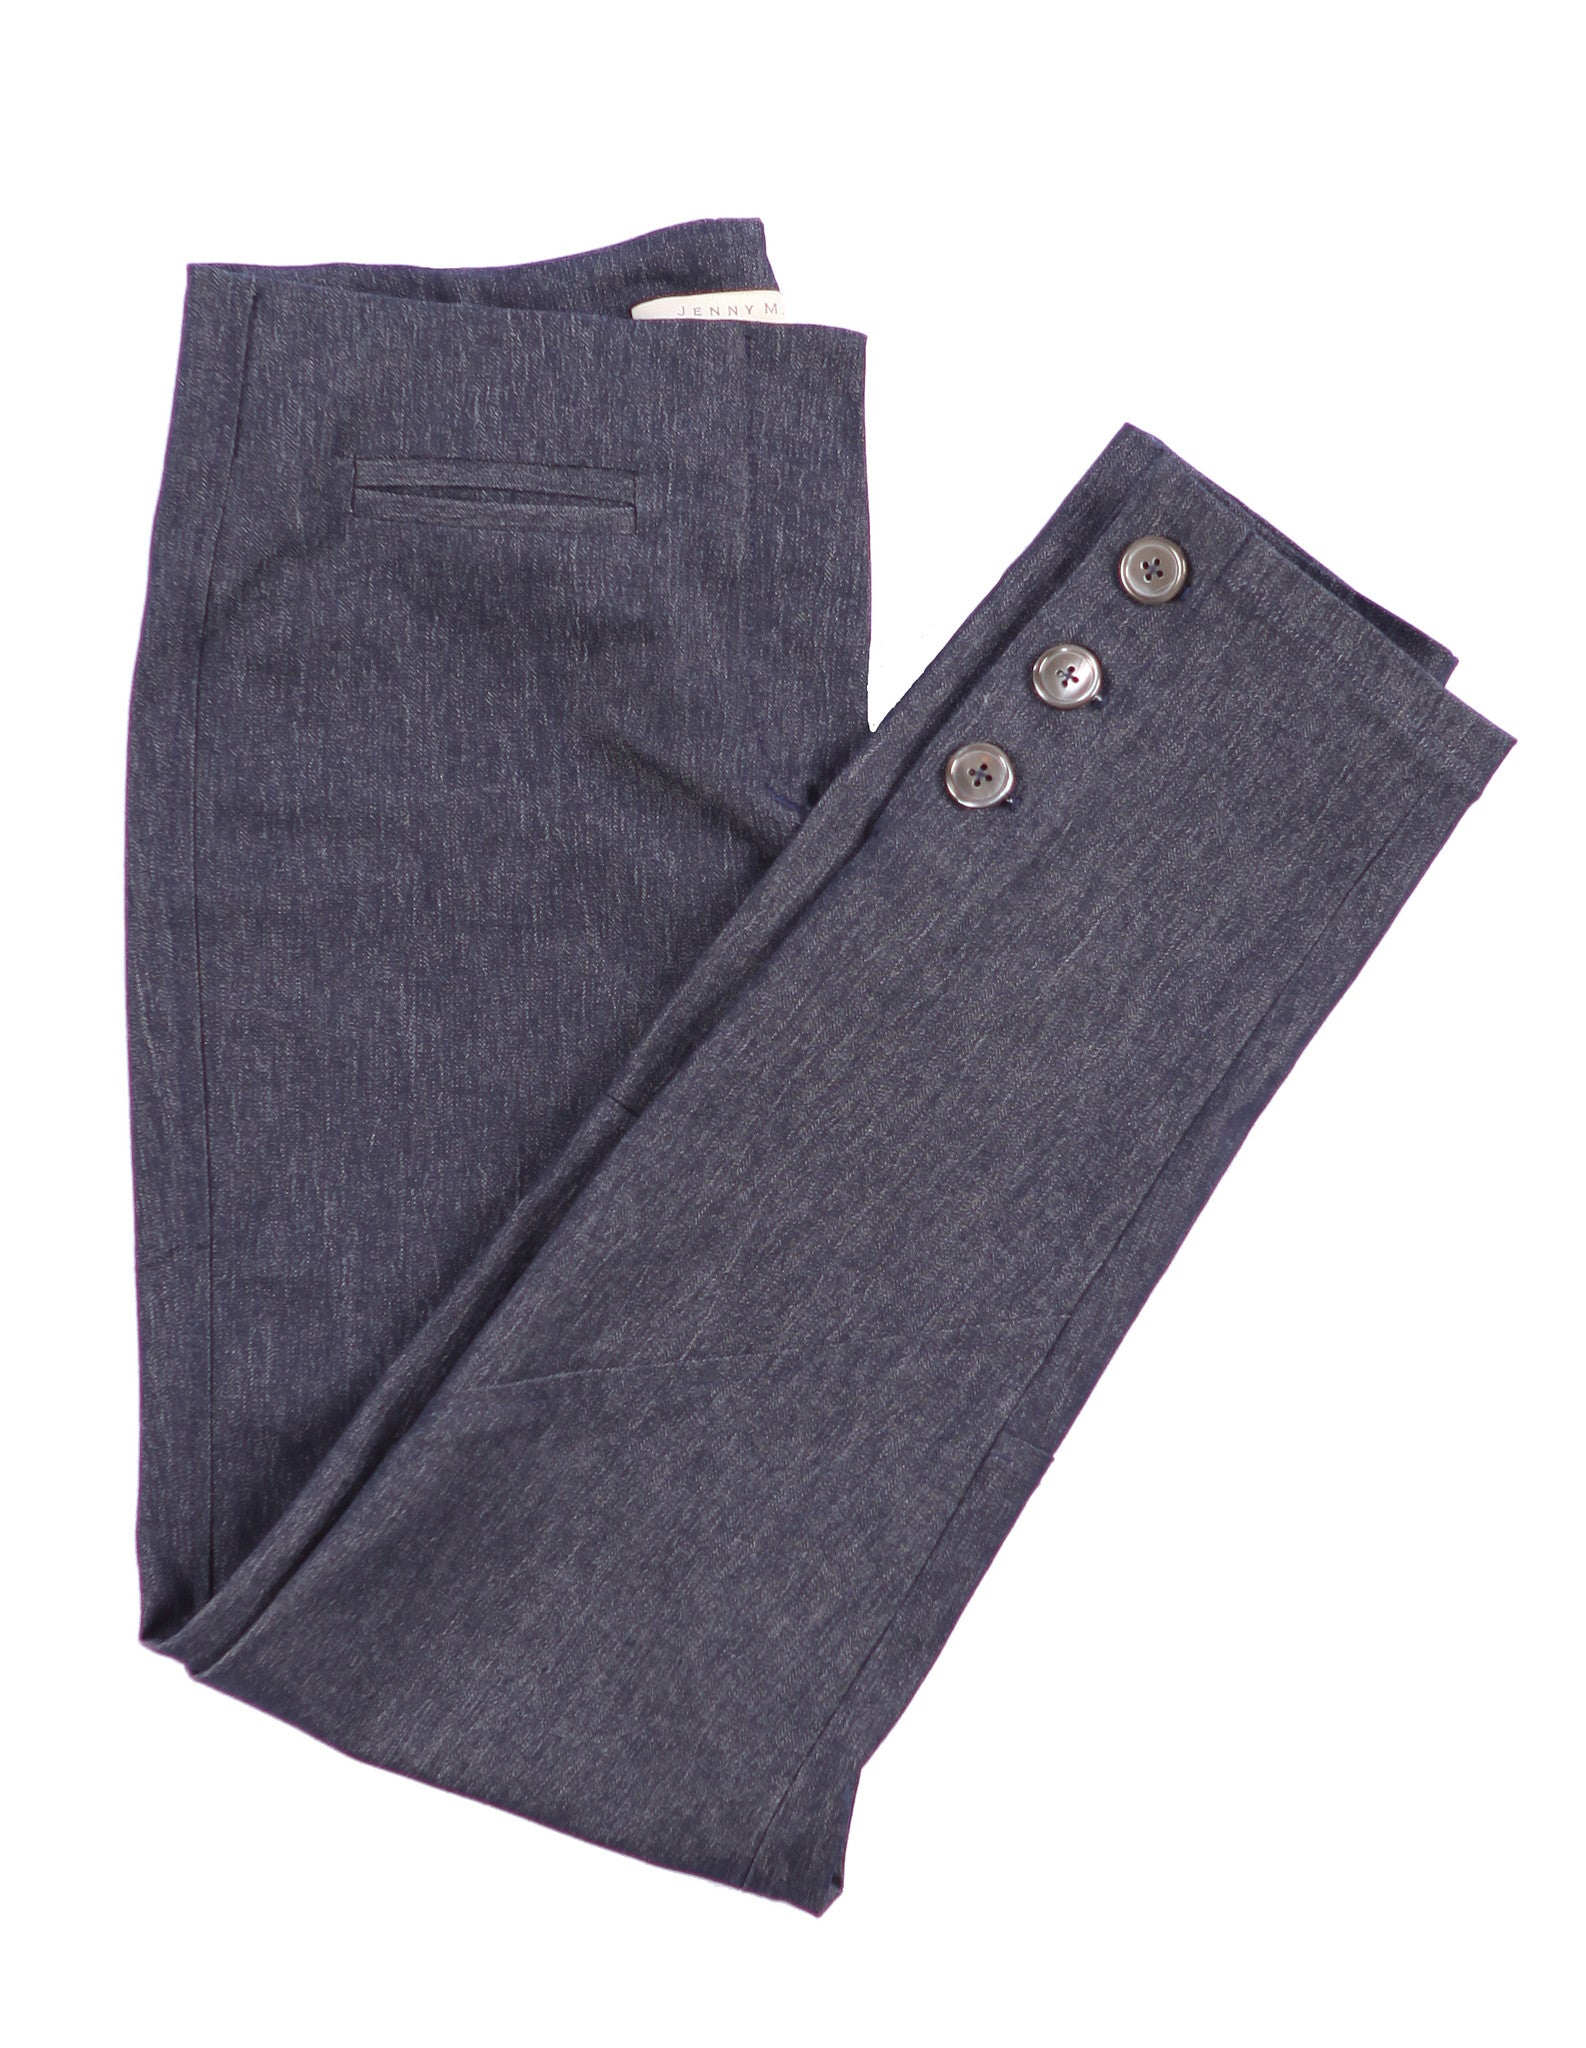 Trousers Denim - Jenny M. London  - 2